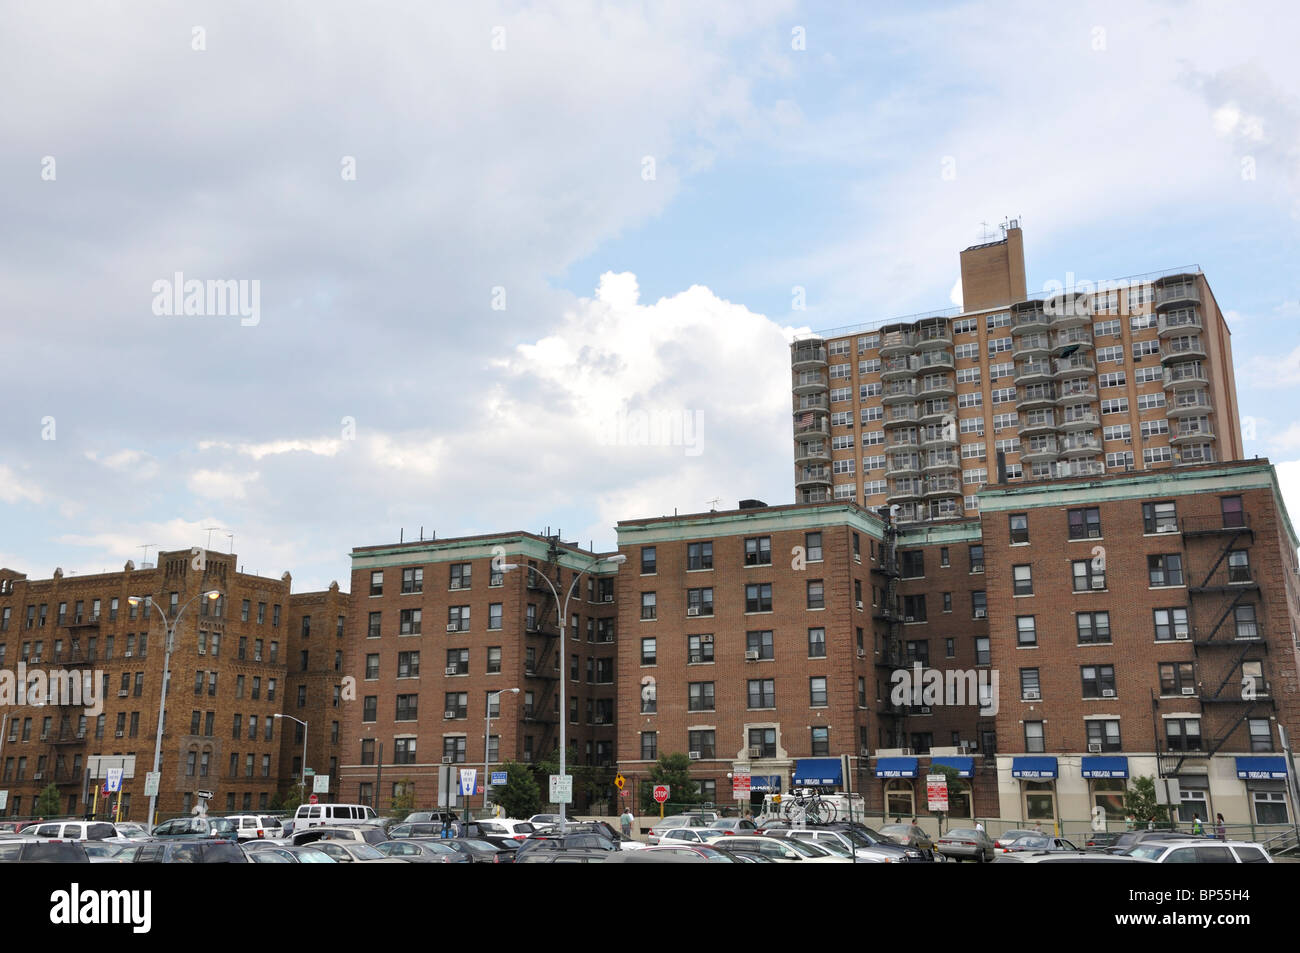 Brighton Beach Apartments And Parking, Brooklyn, New York, USA